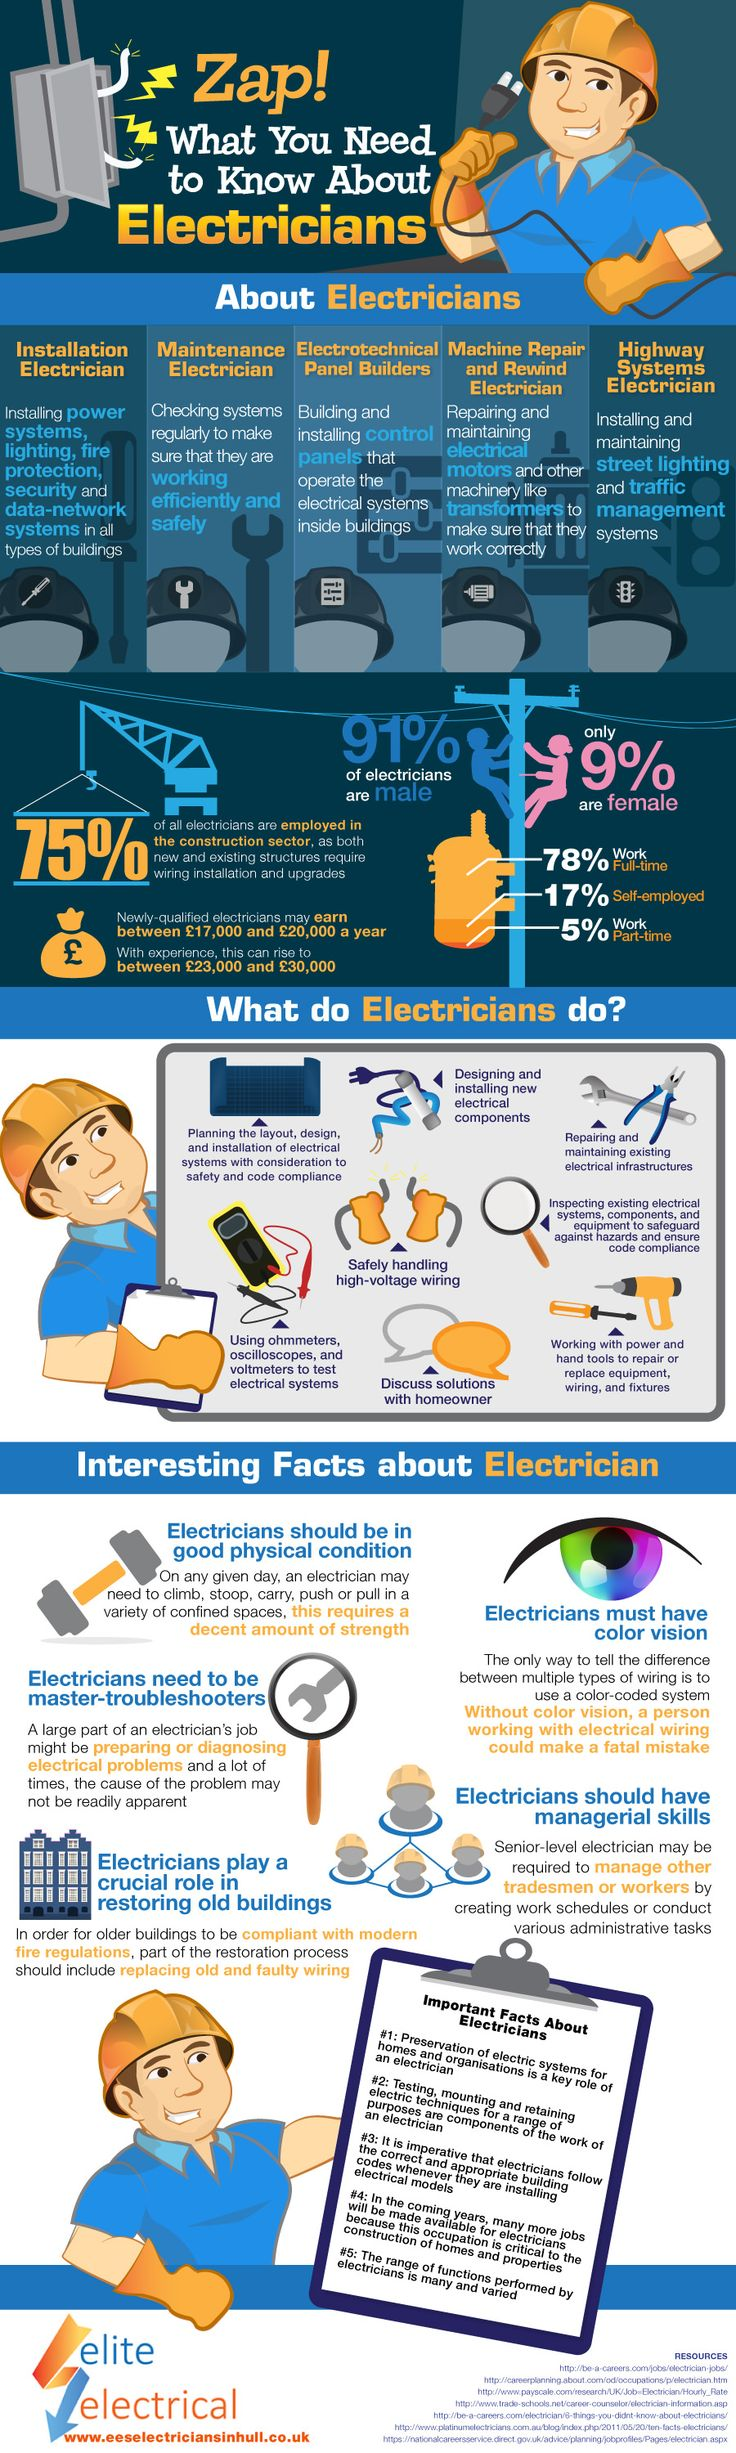 29 best Electrical Services images on Pinterest   Electrical work ...